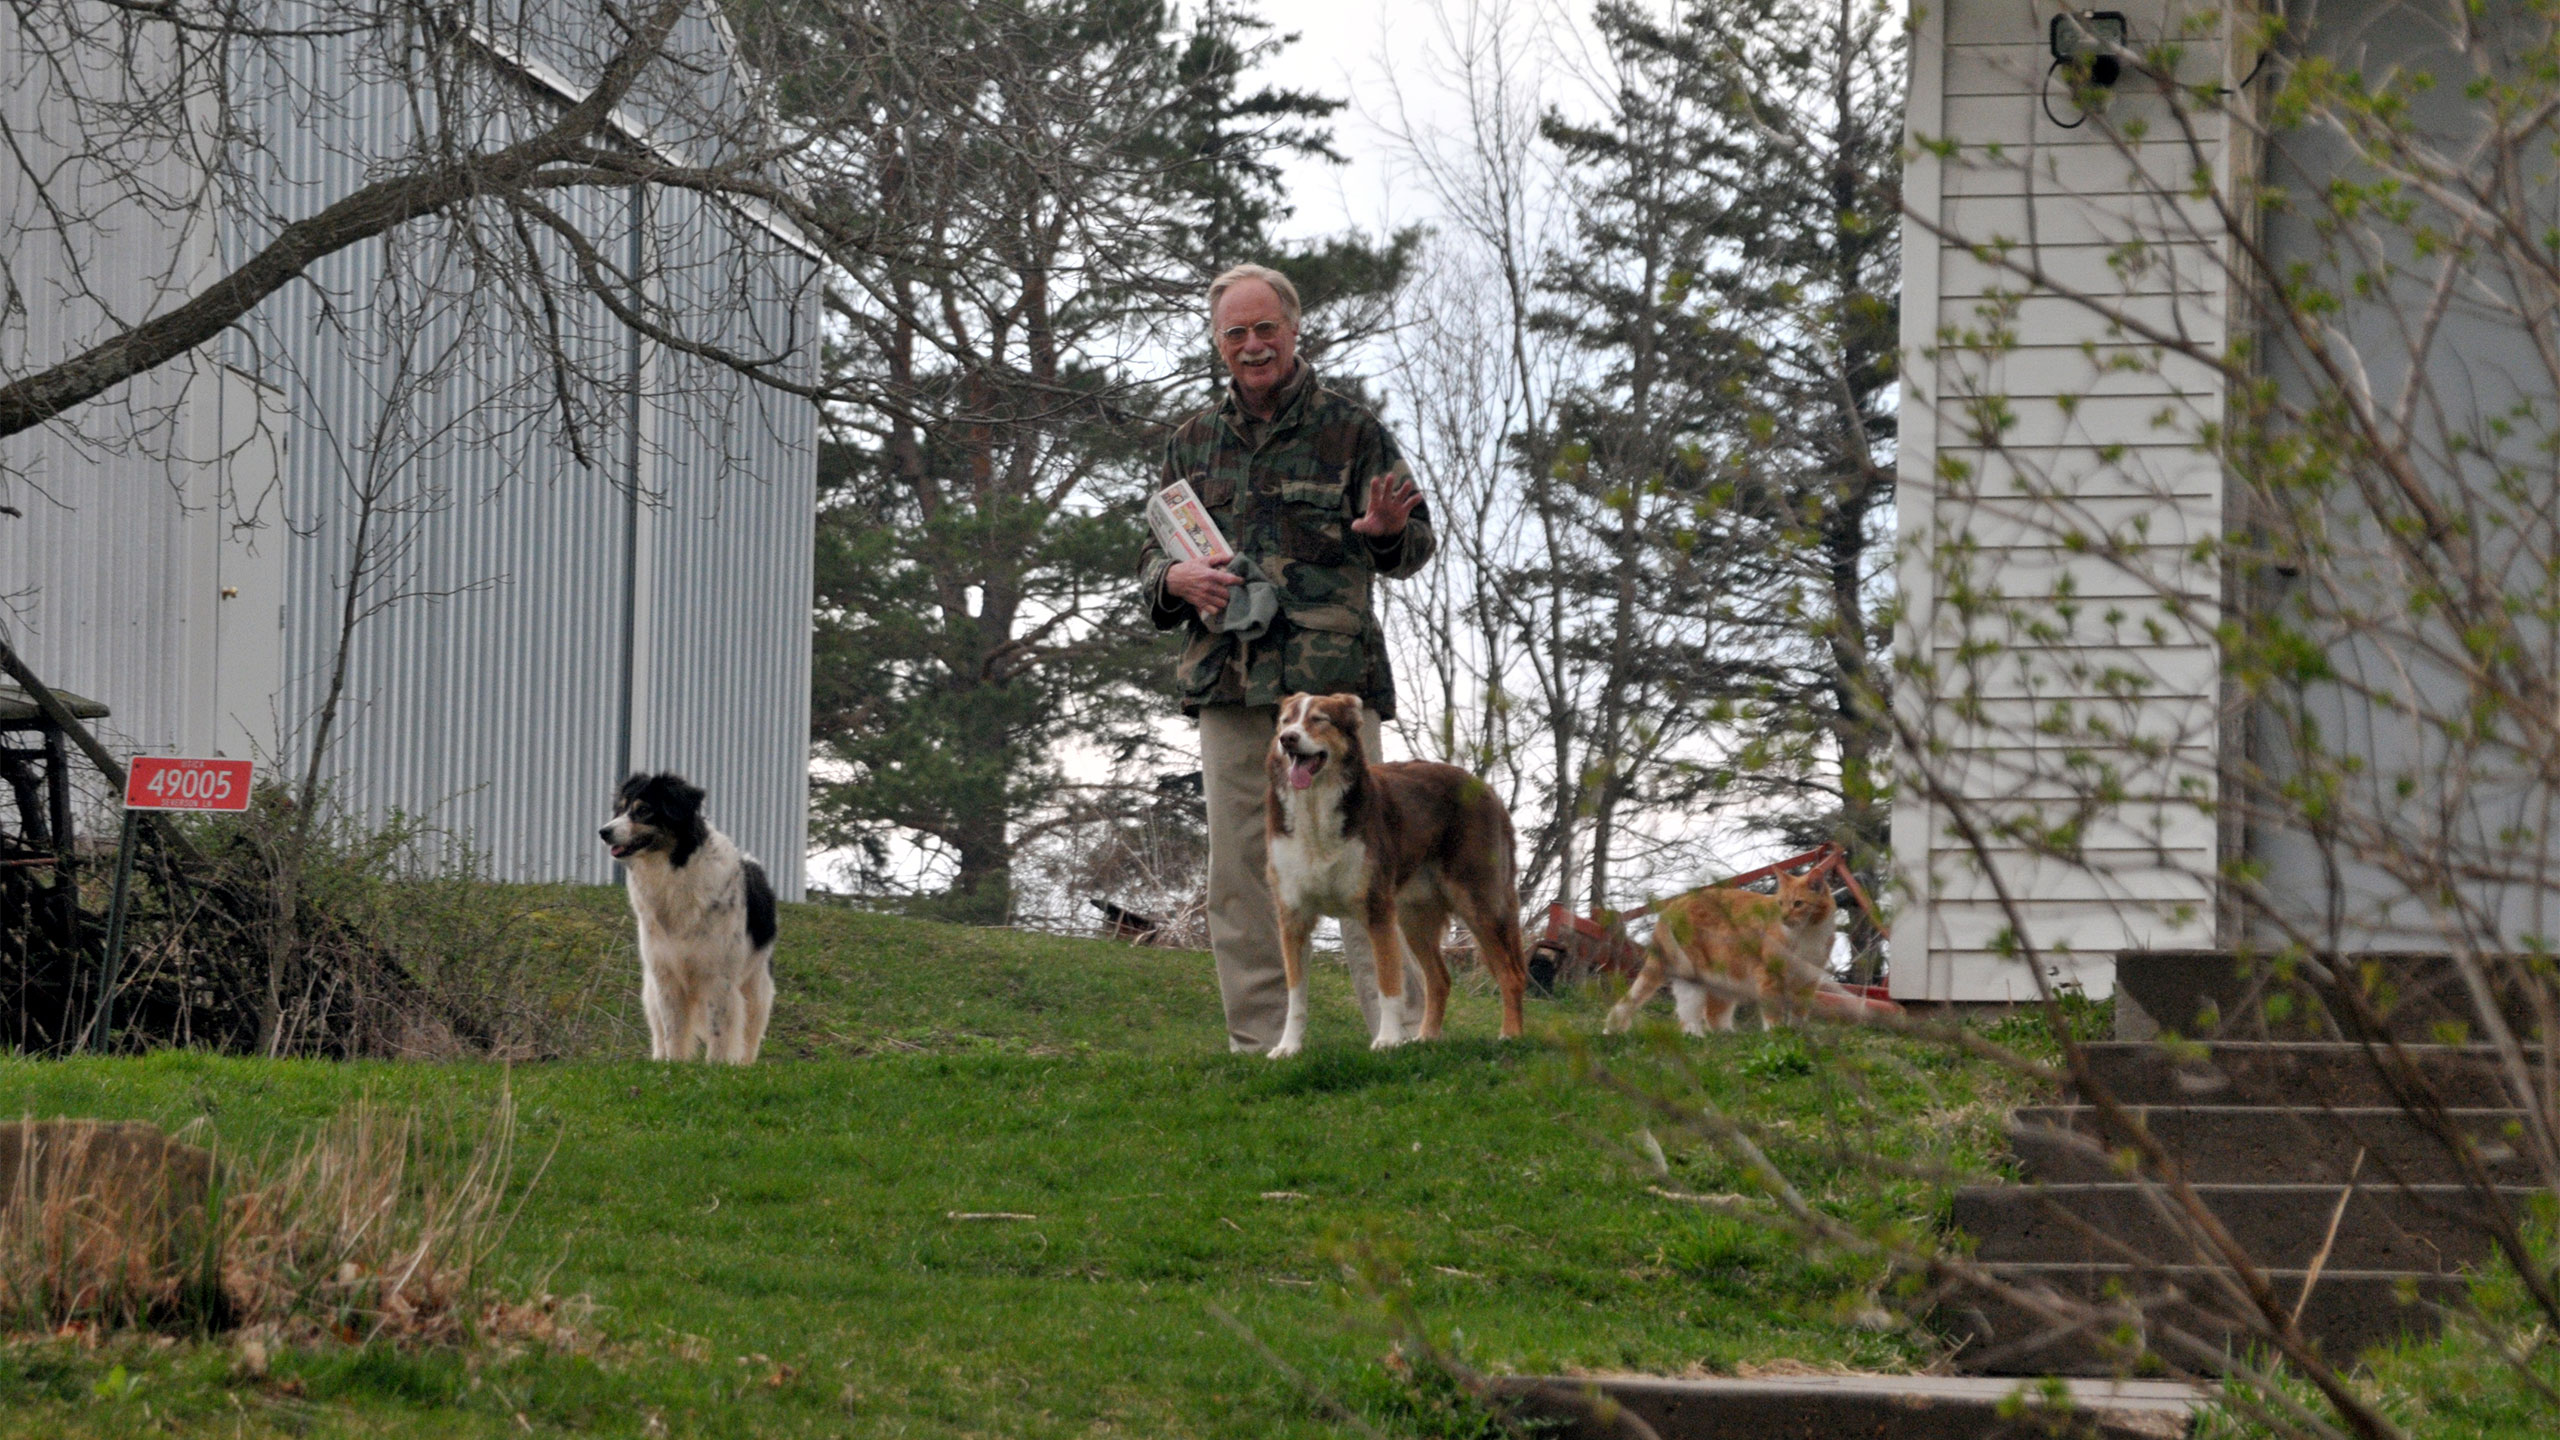 Man standing outside with 3 dogs